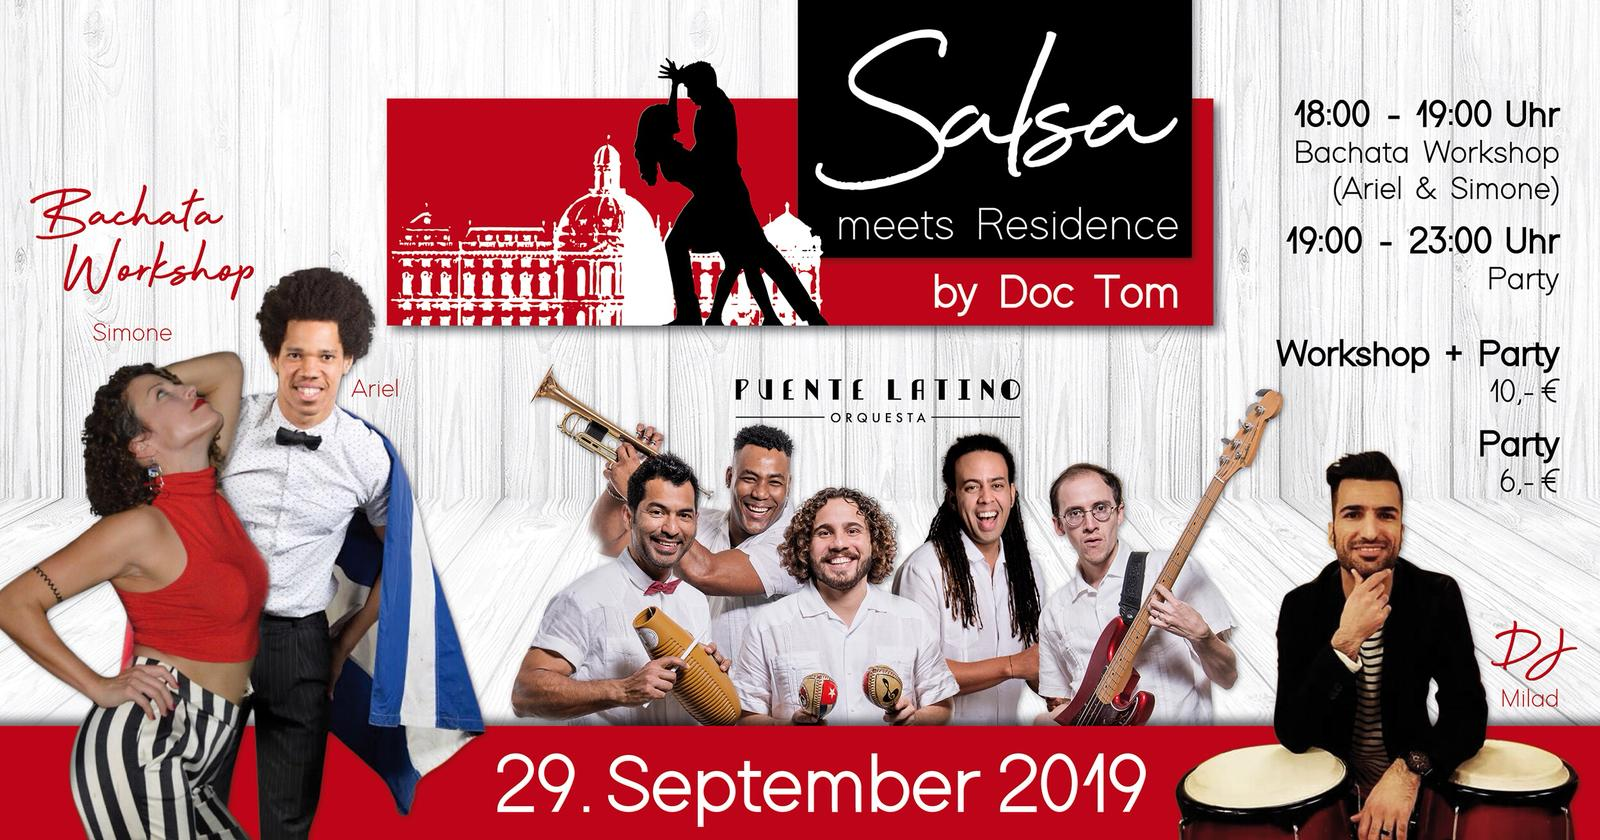 Salsa Meets Residence by Doc Tom 29.9.19 WÜRZBURG in Würzburg